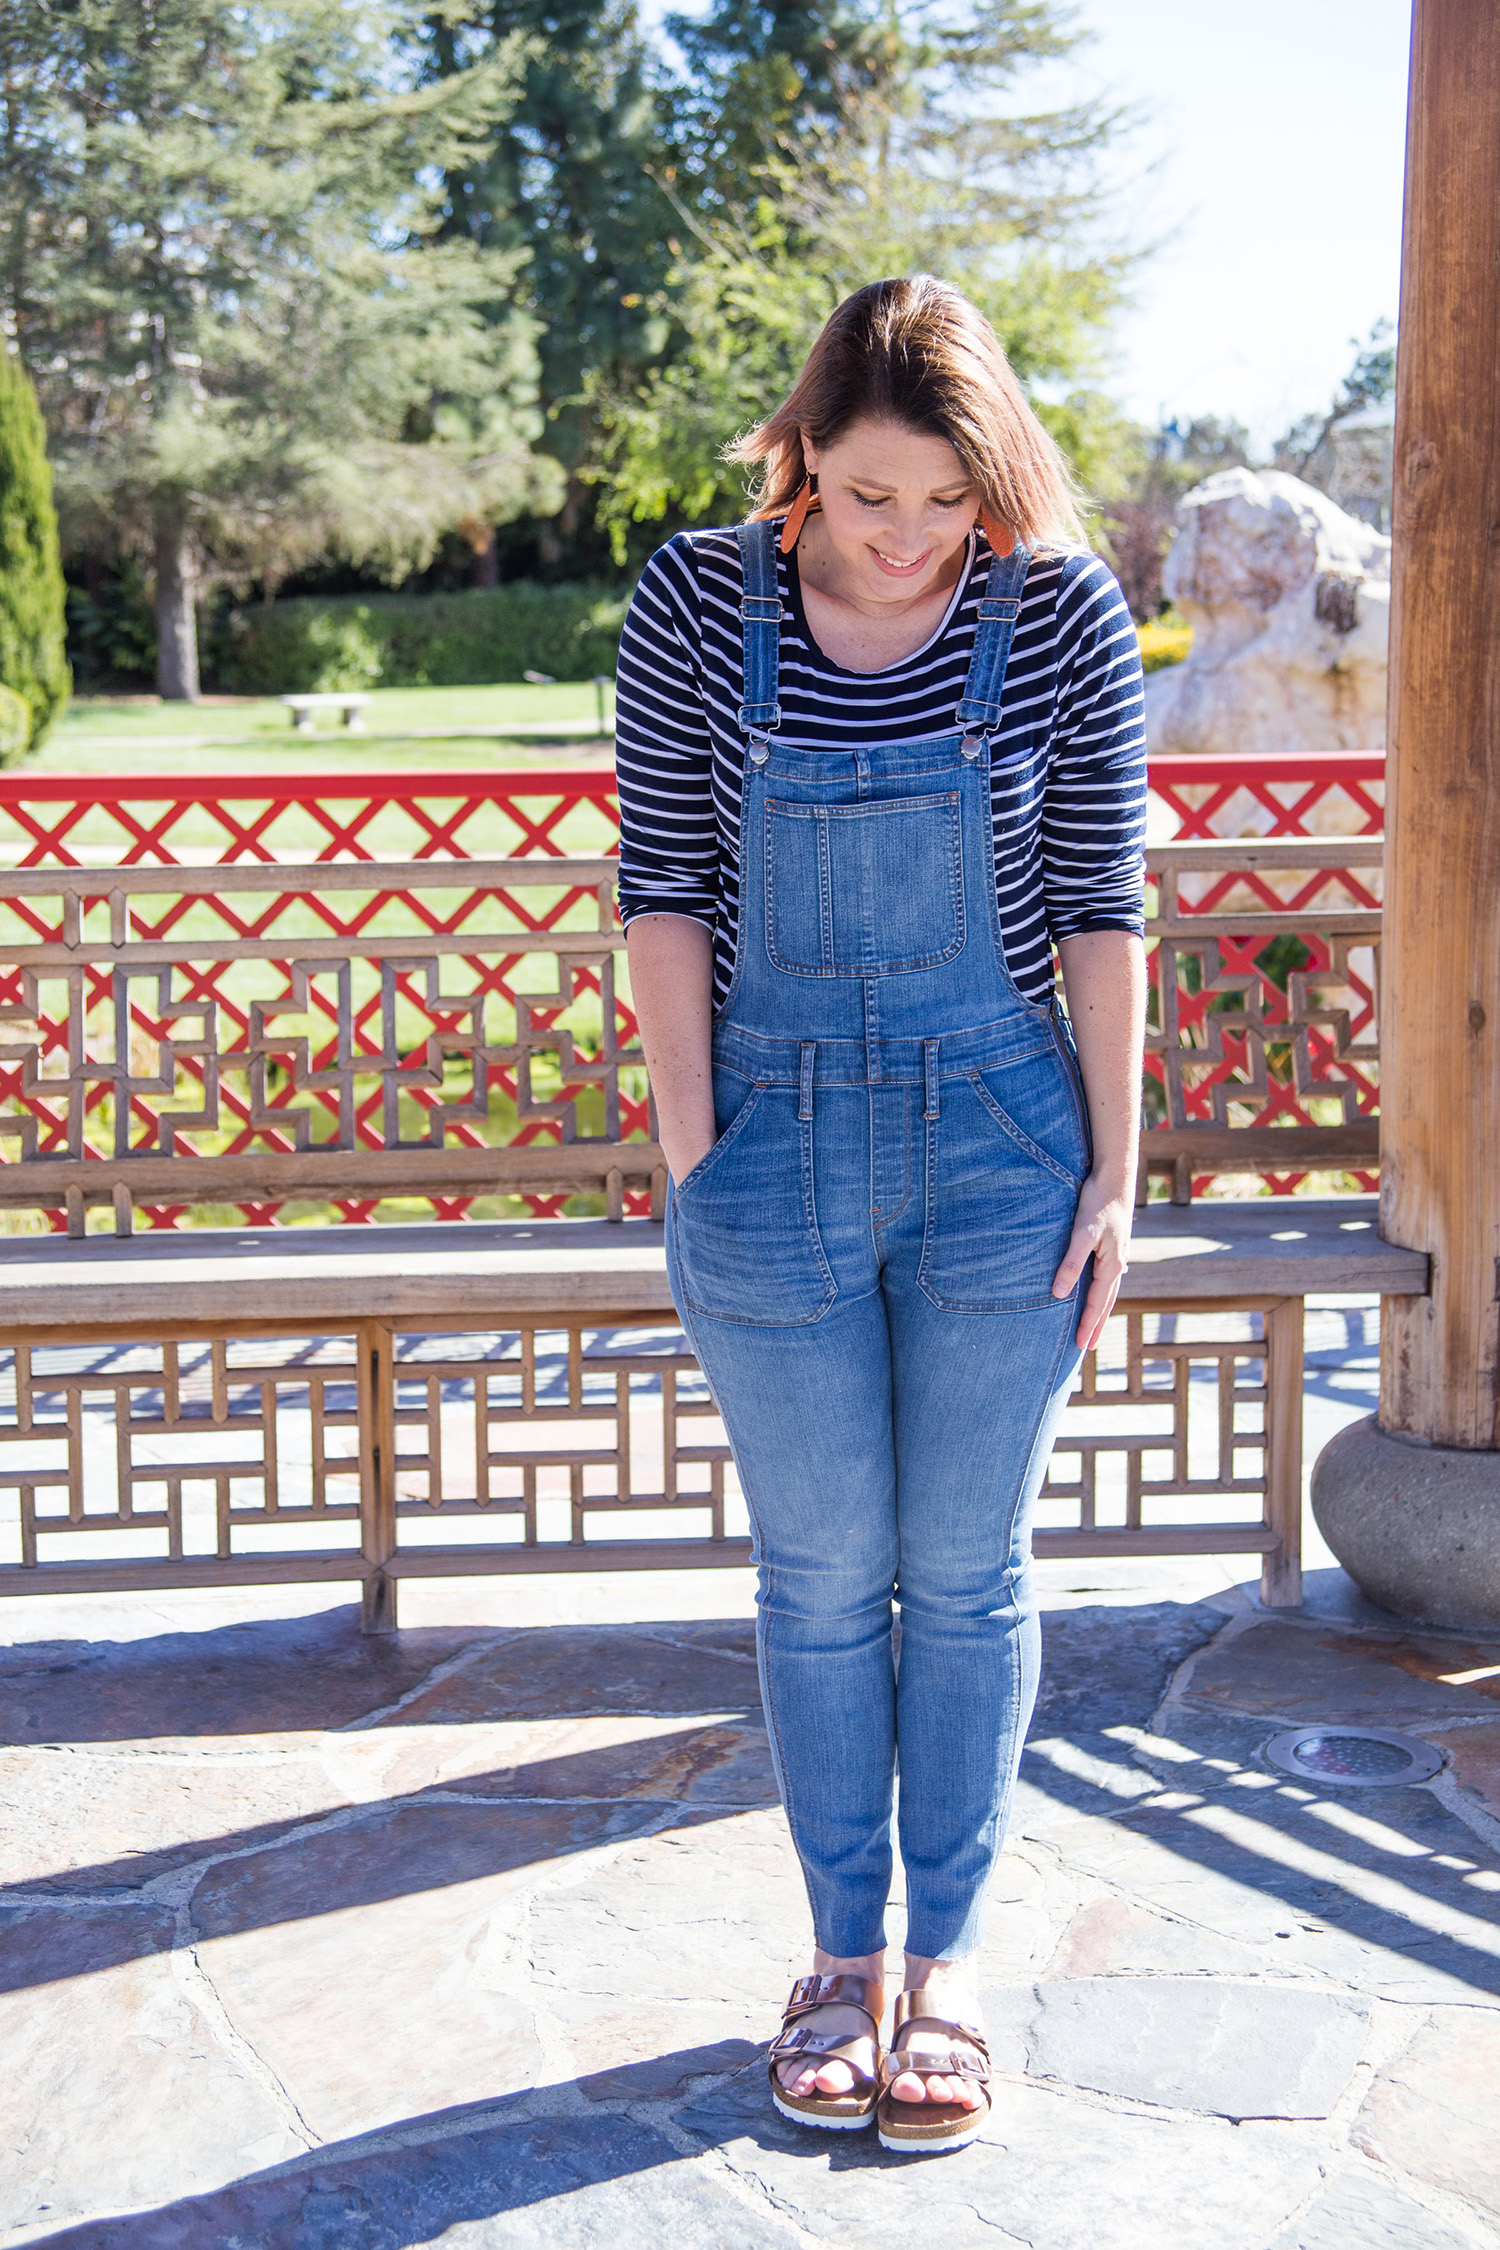 Light Denim Overalls: Looking for overalls for women with curves? This pair has great stretch and look great with everything!